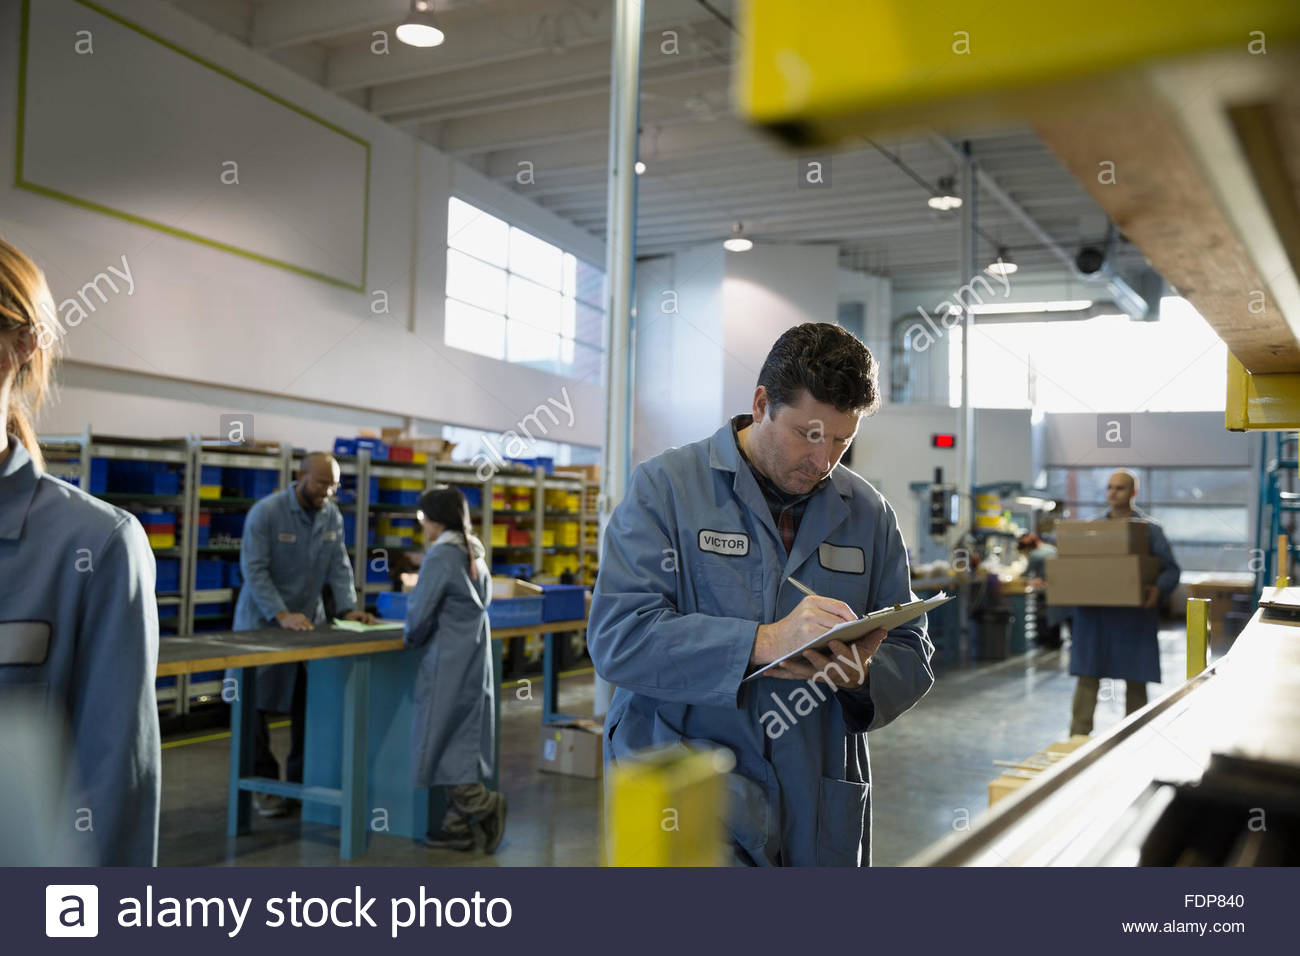 Worker with clipboard in textile factory - Stock Image